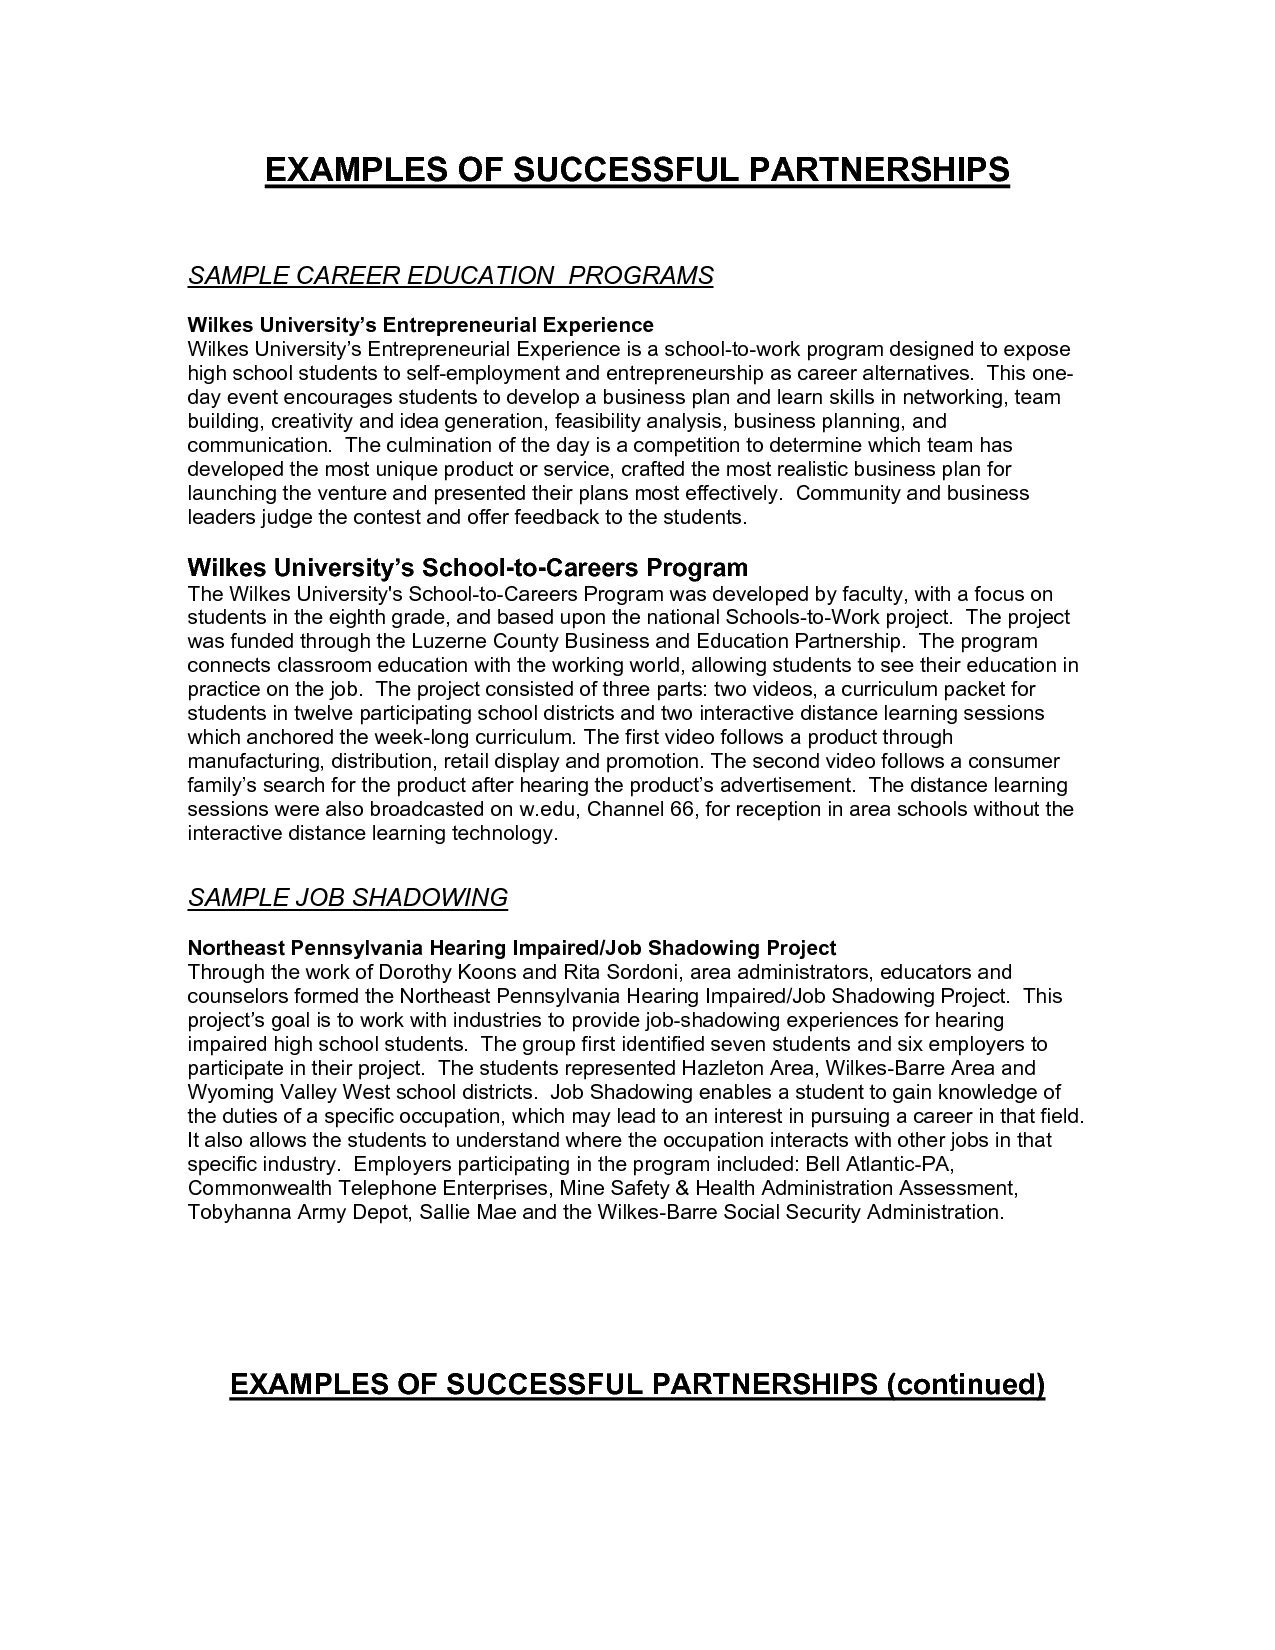 Resume Samples For High School Students Flickr Photo Sharing  Http